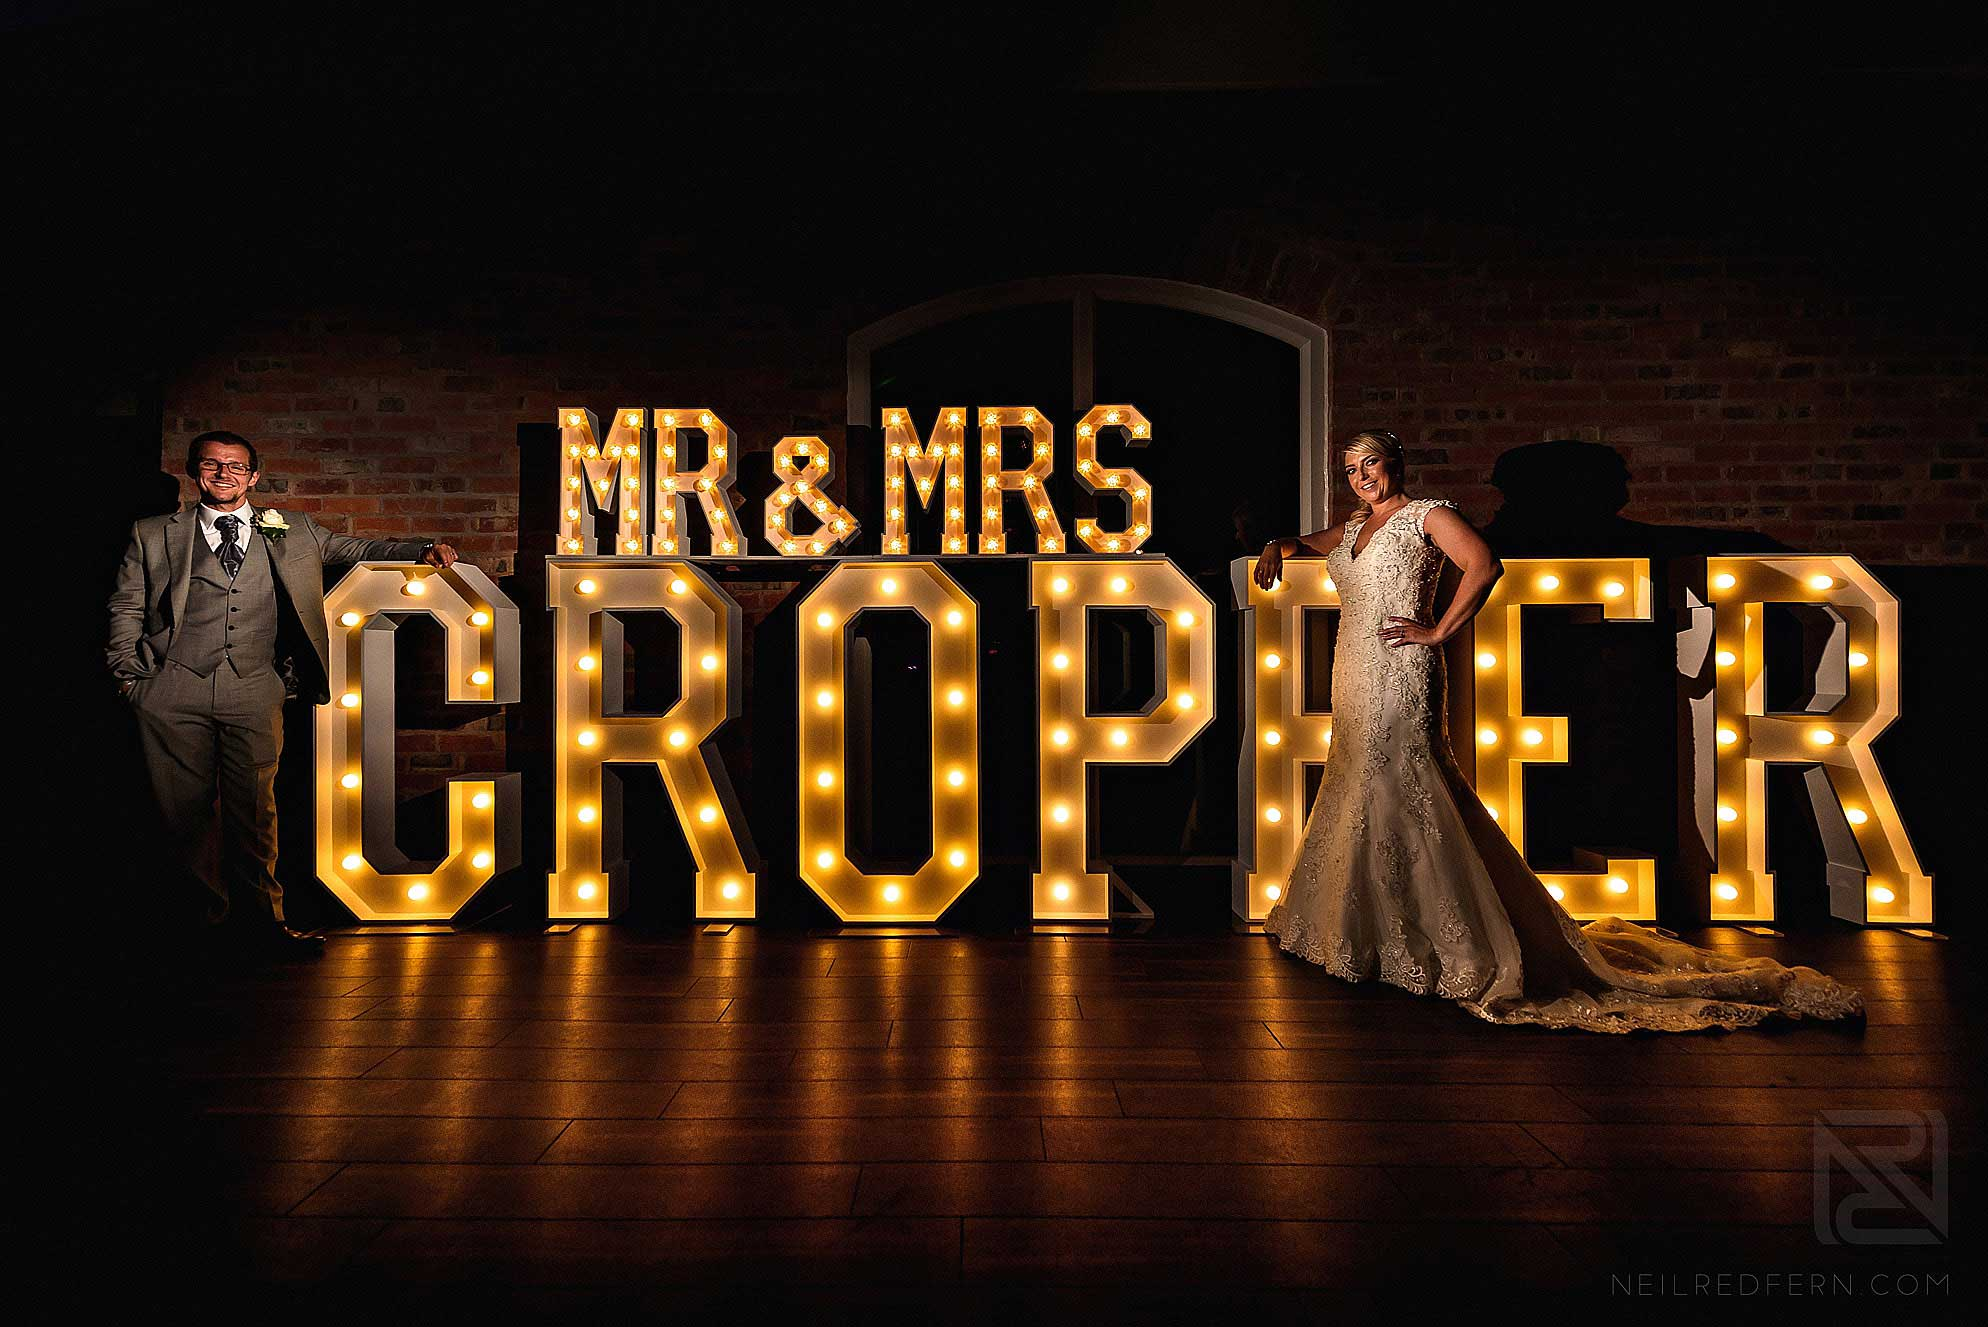 couple stood in front of large letters at wedding